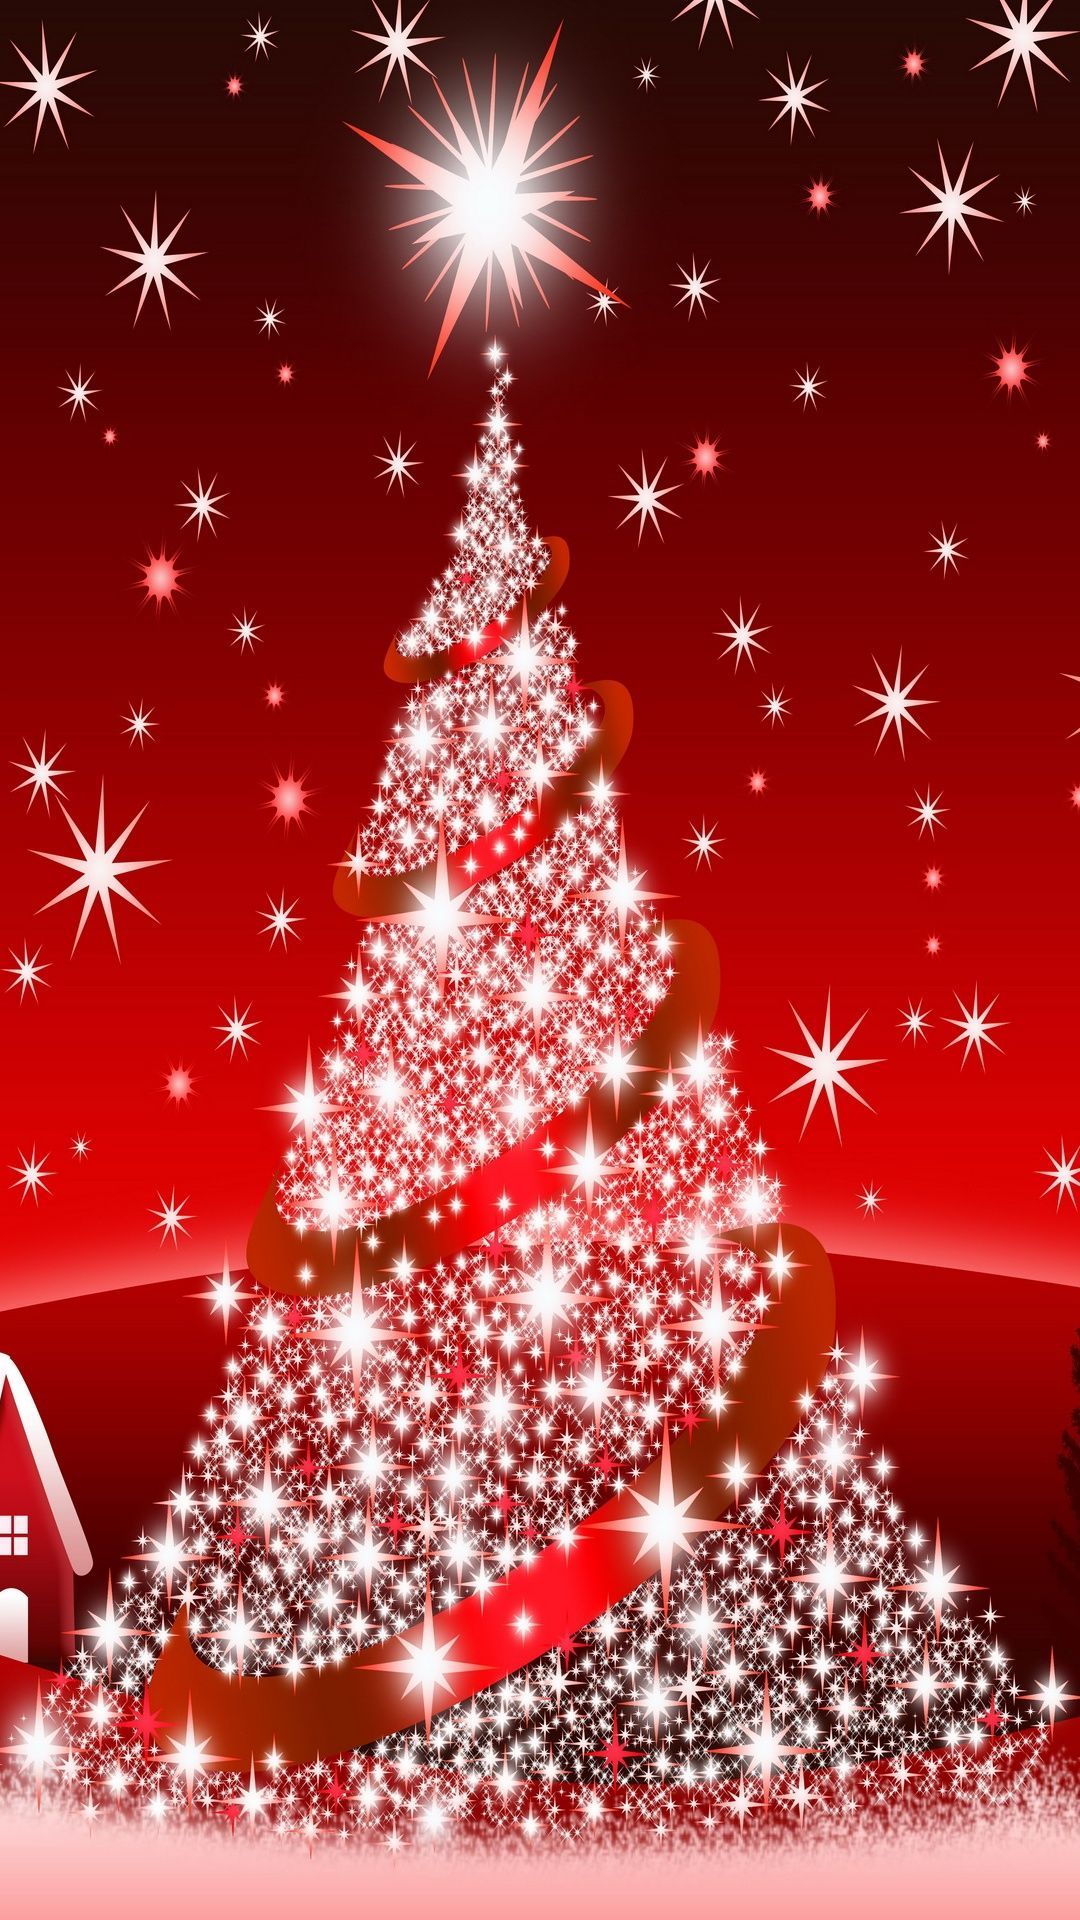 merry christmas Apple iPhone 5s hd wallpapers available